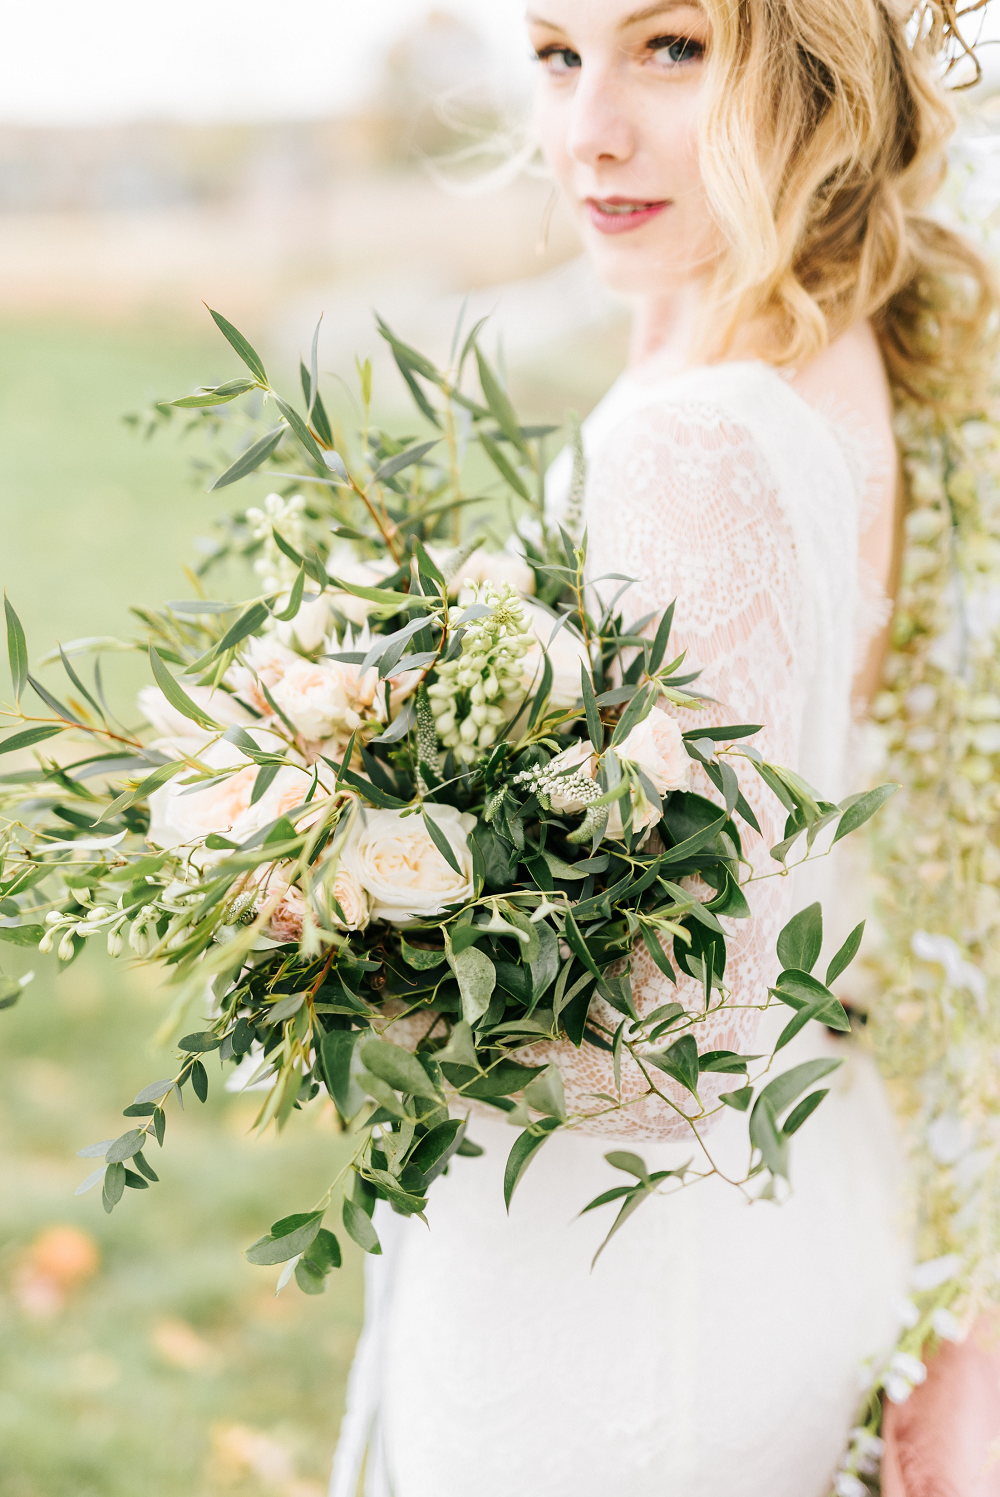 Lush Greenery Wedding Inspired Styled Shoot at Cornman Farms Bridal Bouquet